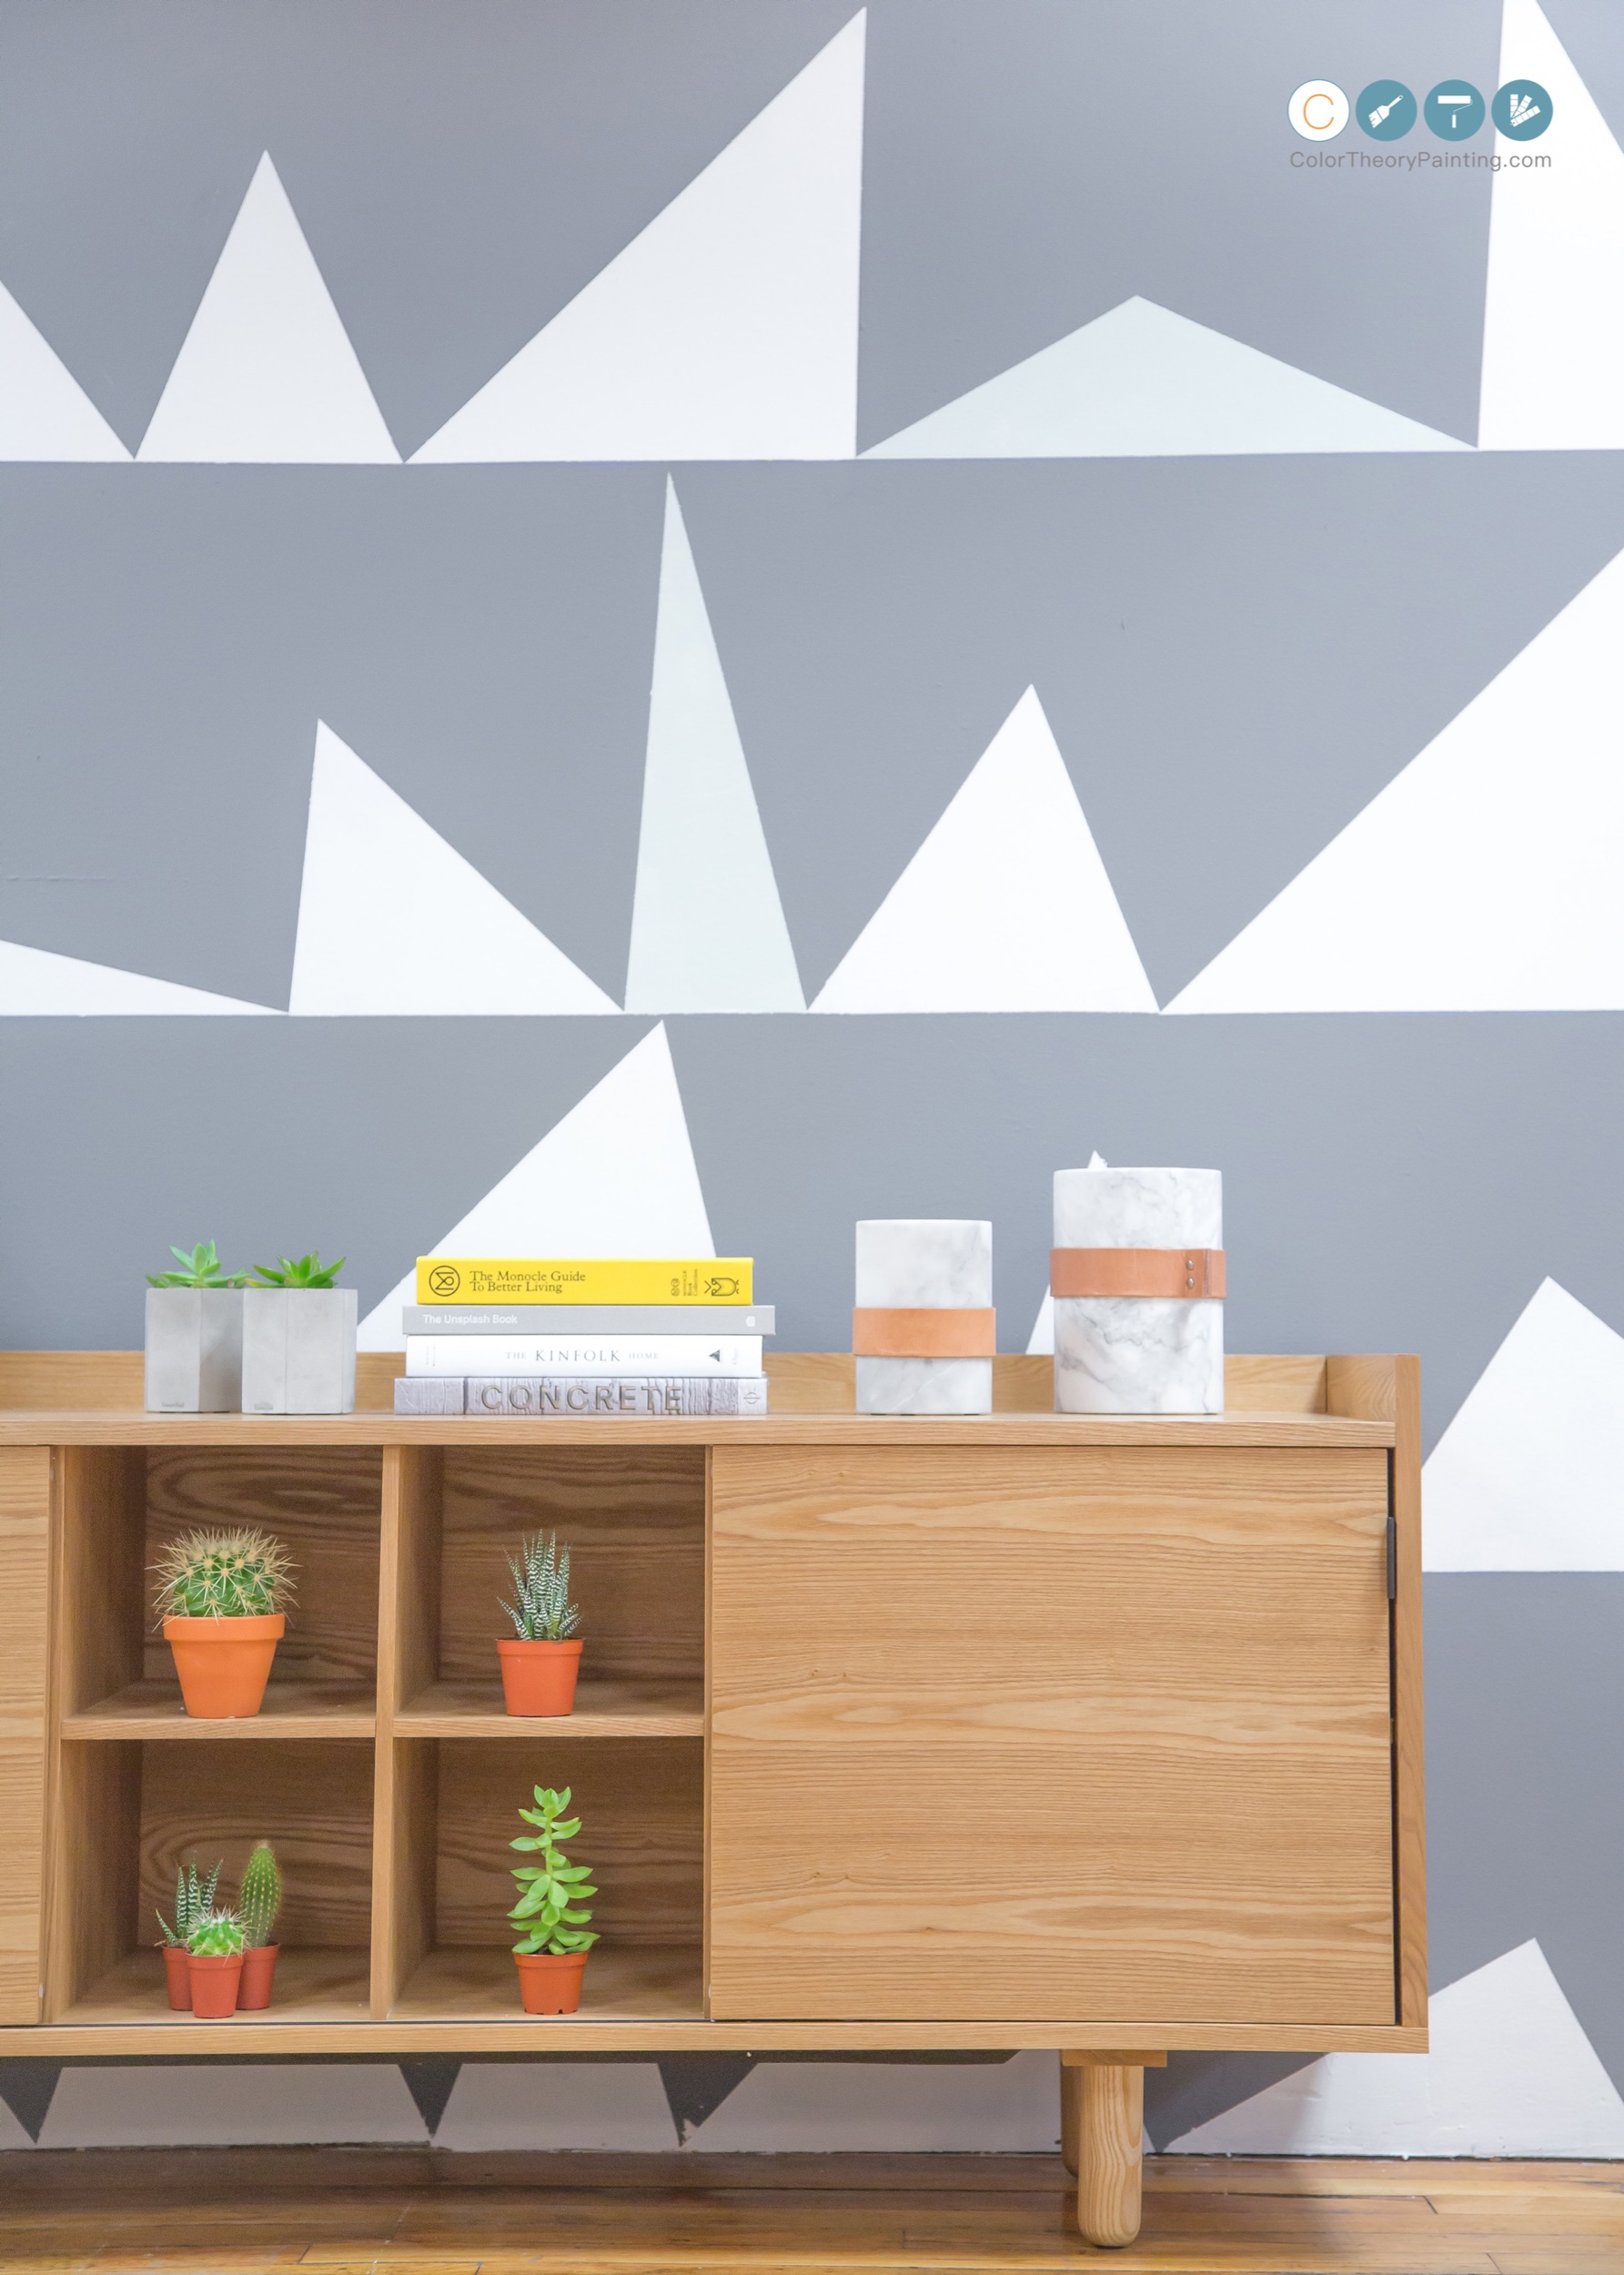 Triangles - Here's an image we found inspiration from on the web. The cool dark grey backdrop broken up and lightened by the unorthodox placement of scalene triangles.